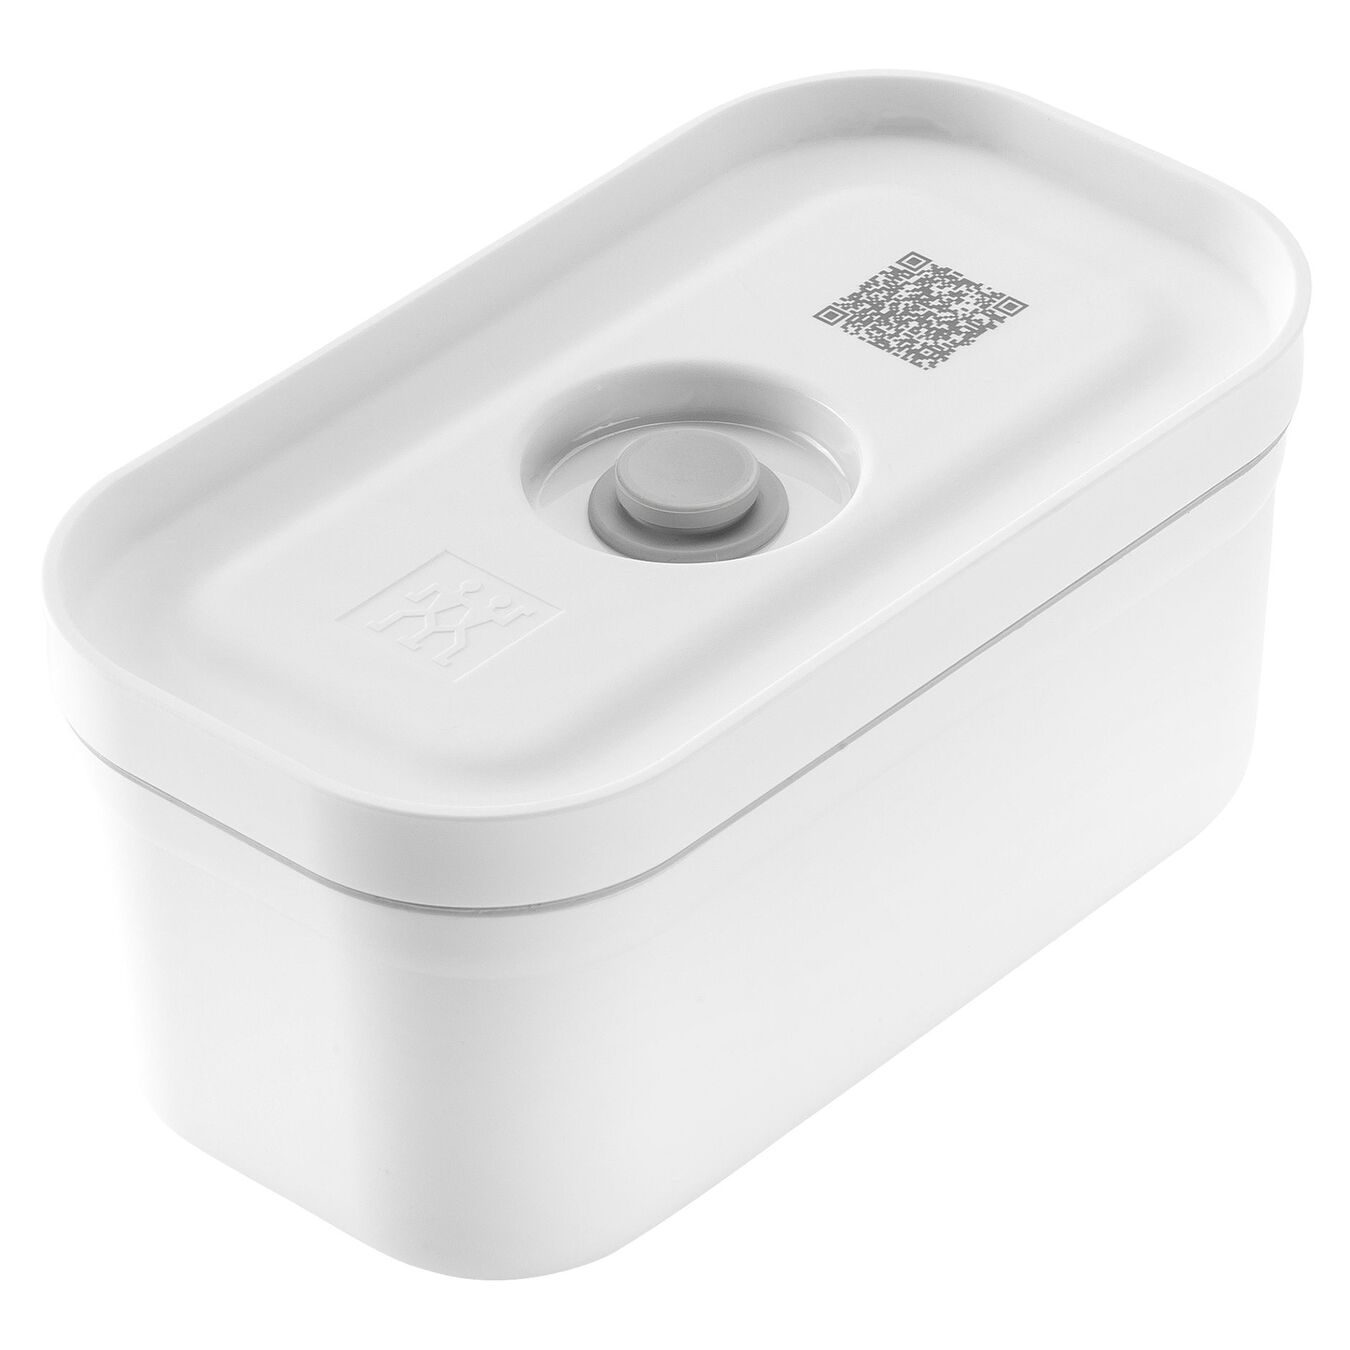 Vacuum lunch box, small, white,,large 1